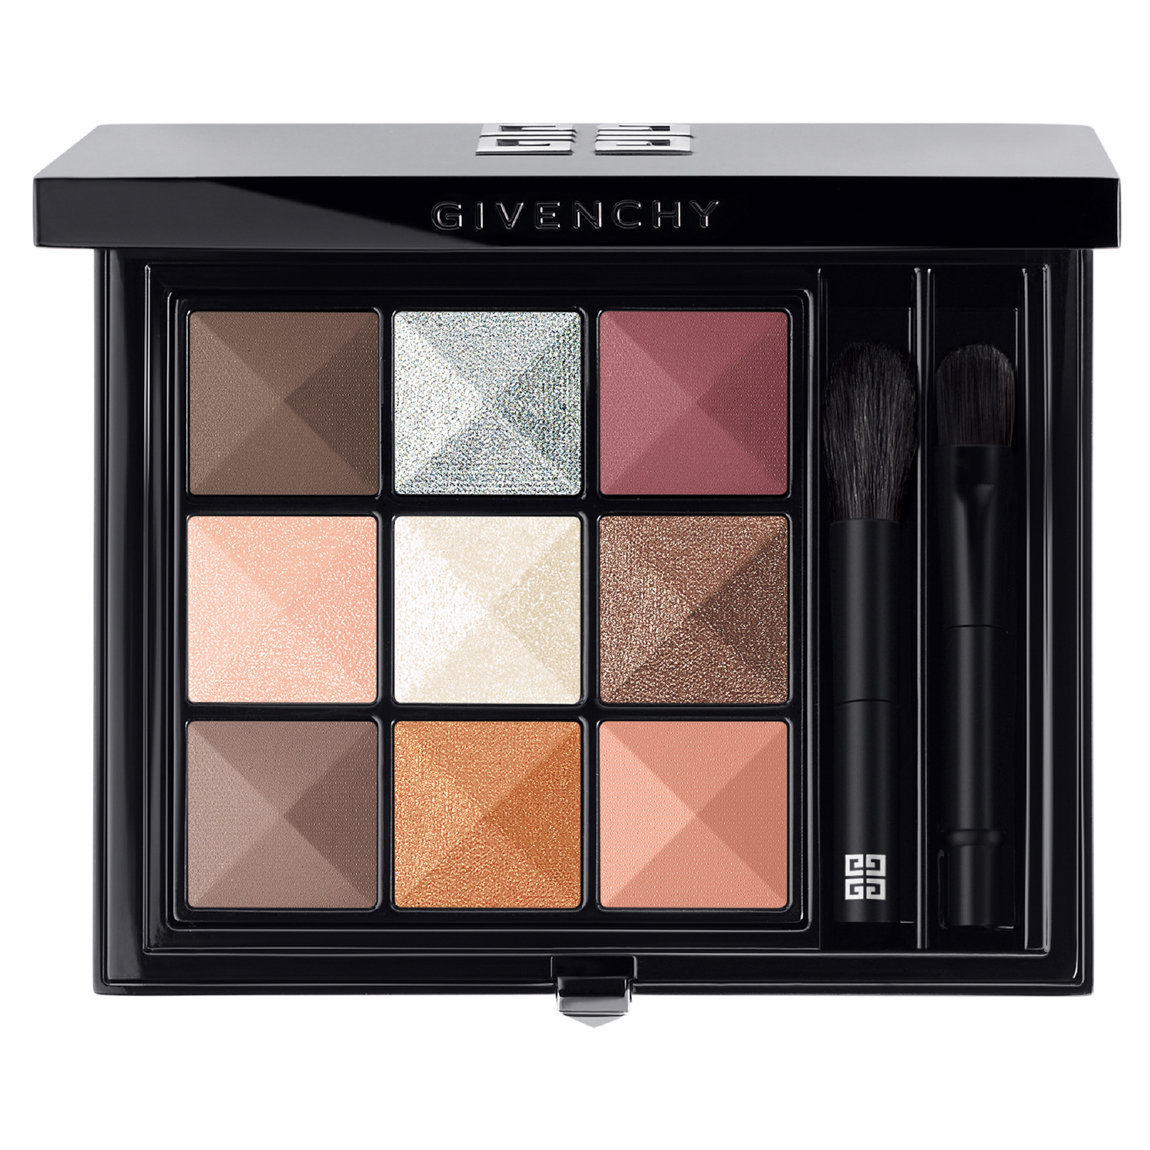 Givenchy Le 9 De Givenchy N1 alternative view 1 - product swatch.